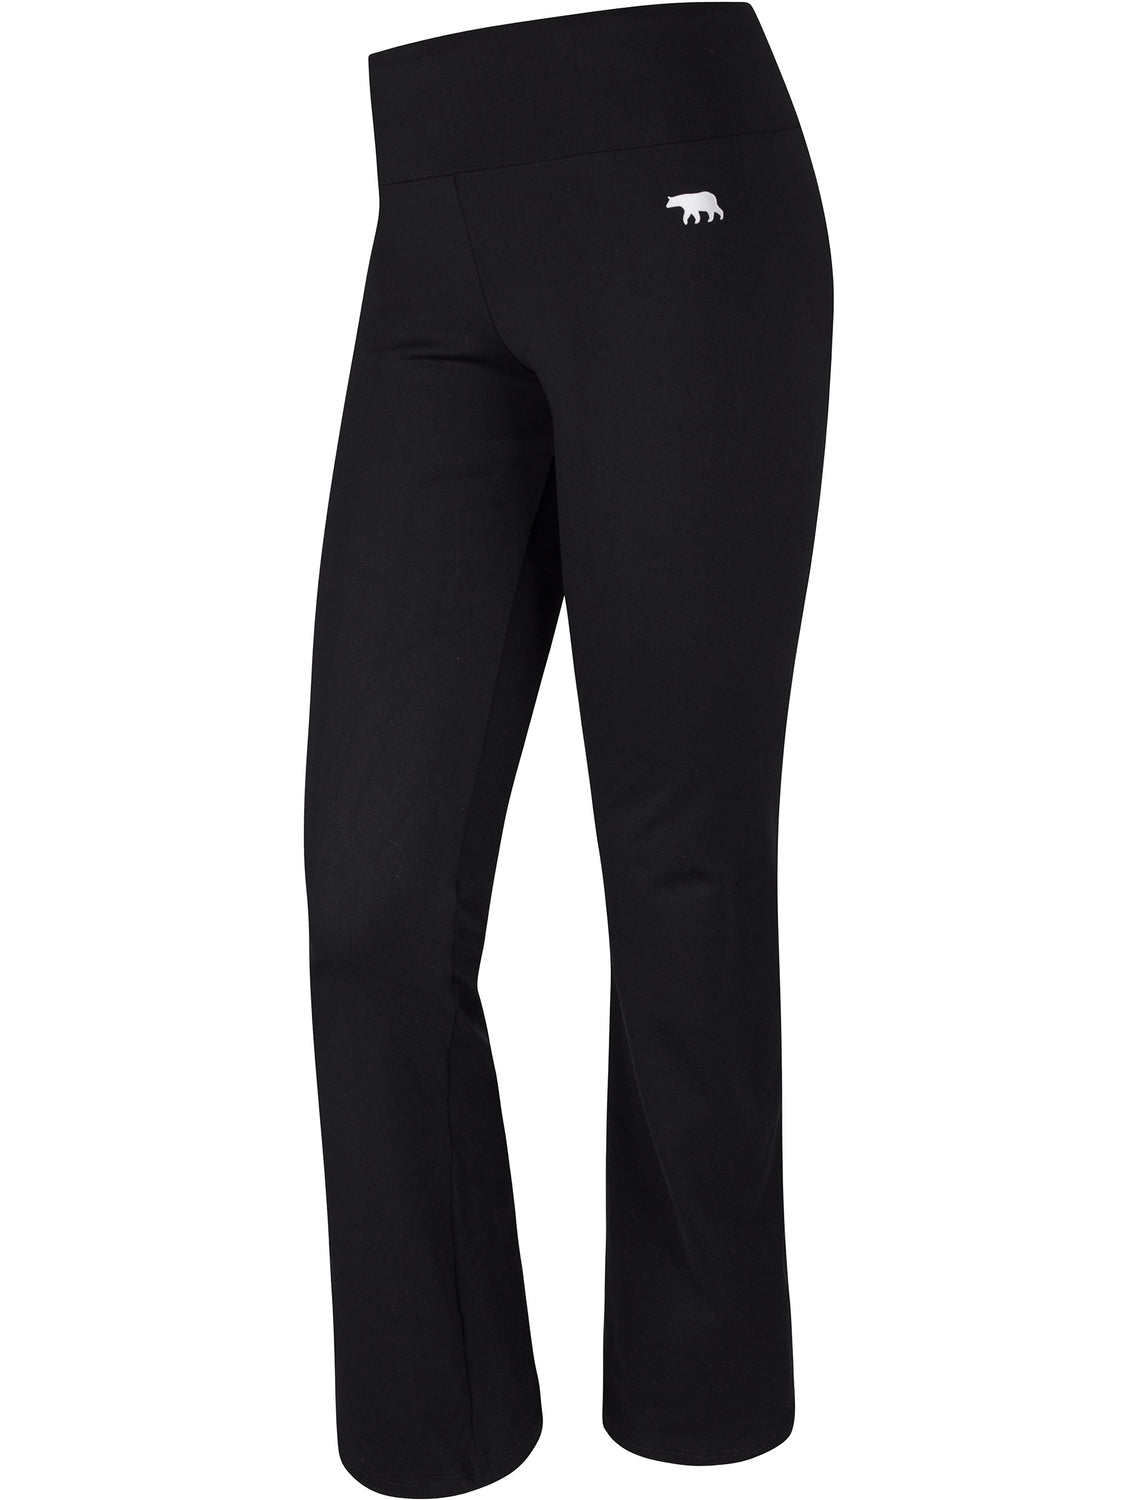 Running Bare High Rise jazz pant